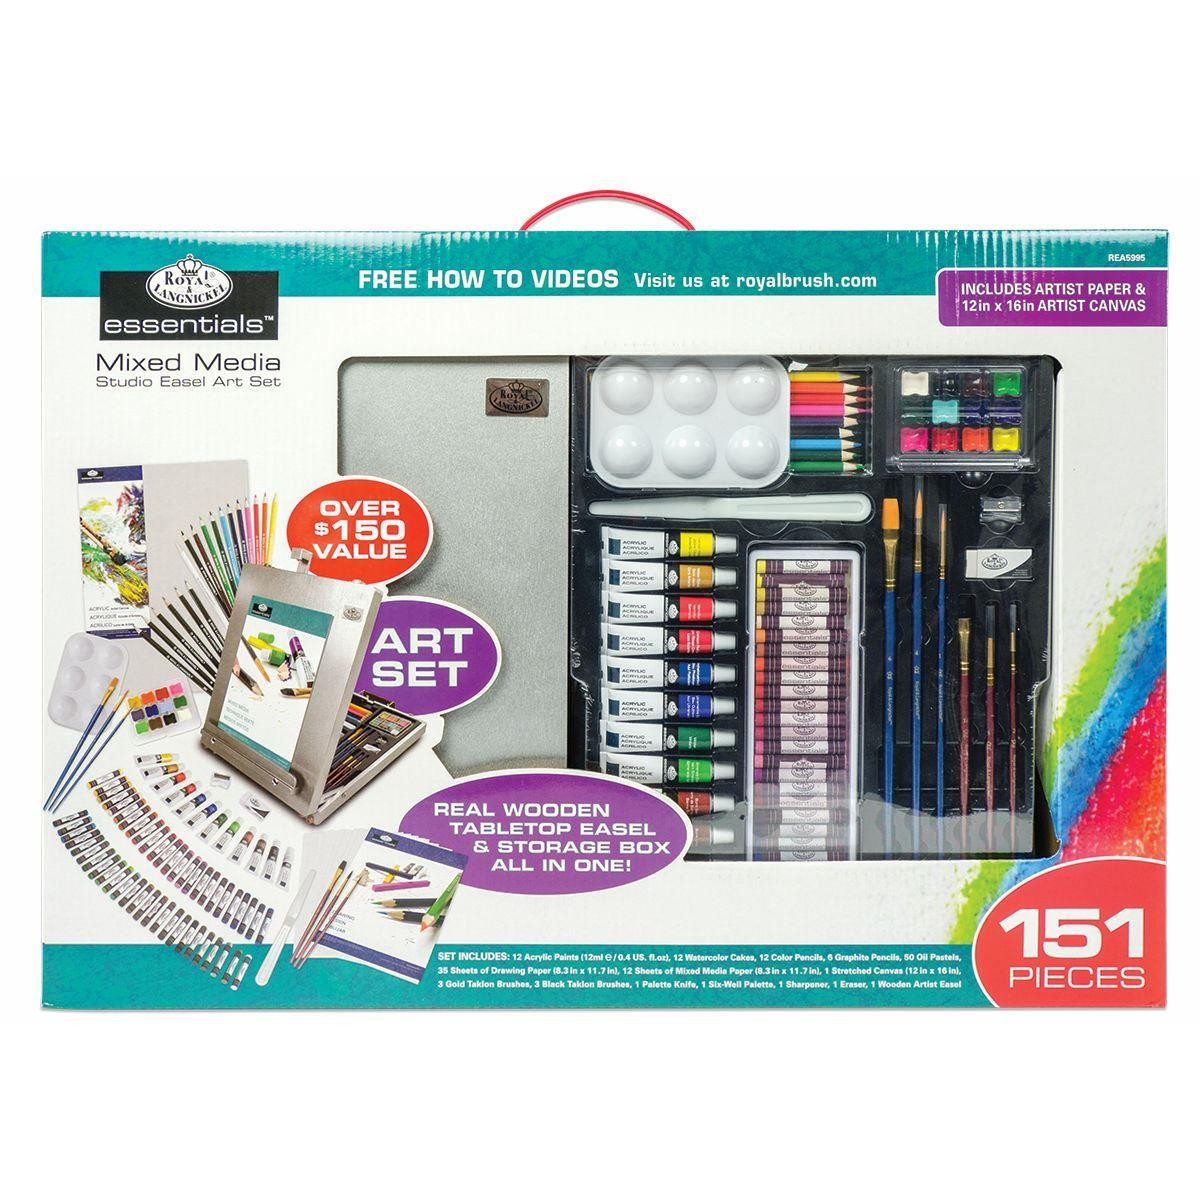 royal & Langnickel mixed media studio art set with 151pc